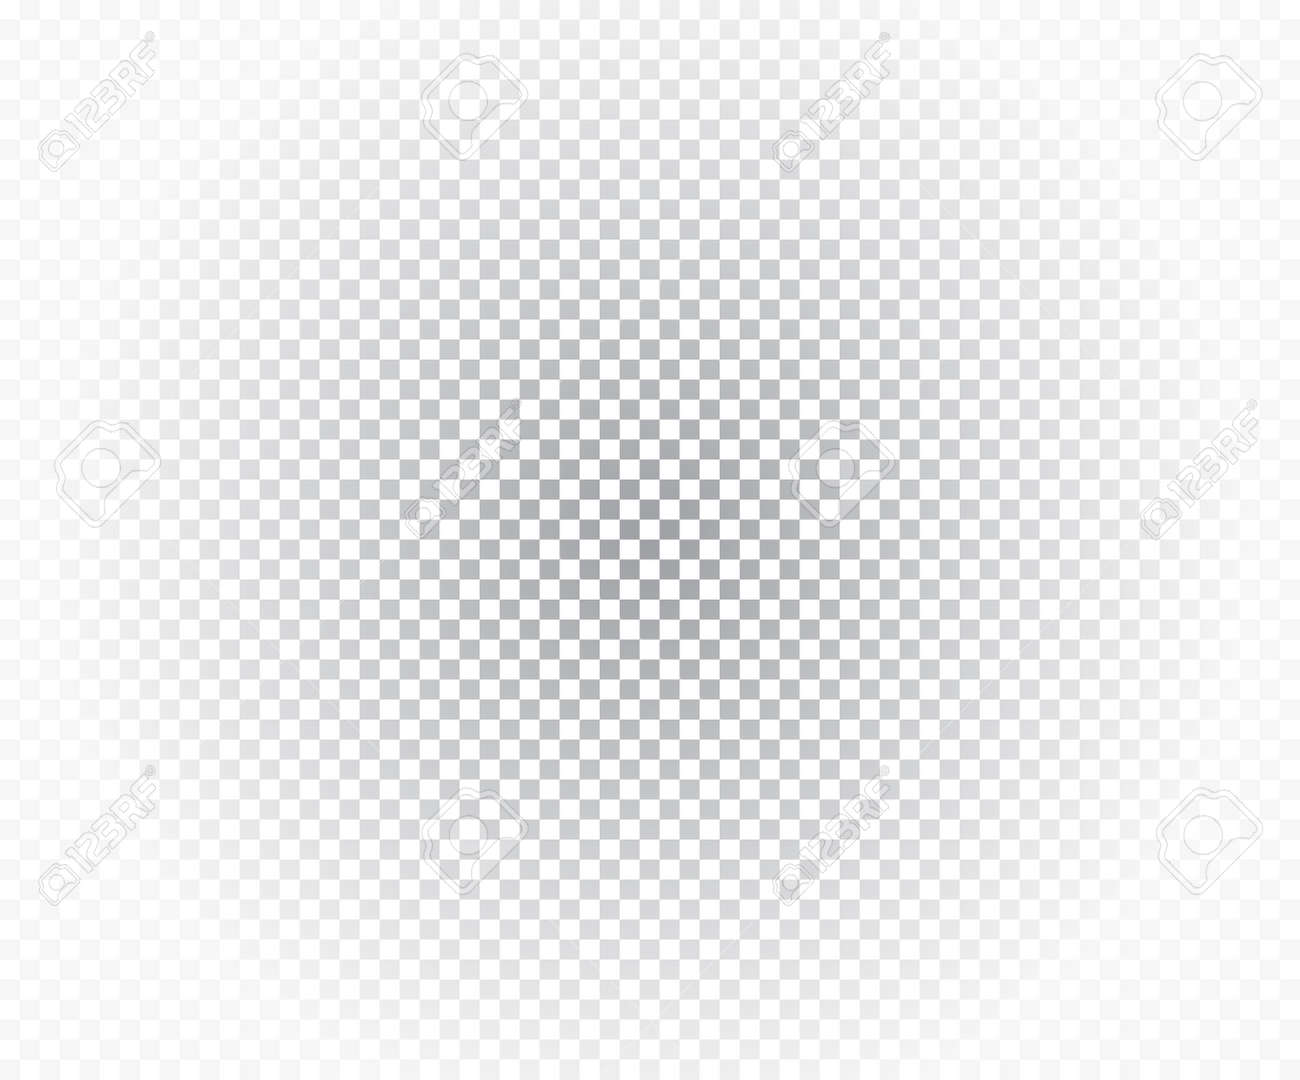 Transparency Grid Texture Vector Pattern With Black And White Royalty Free Cliparts Vectors And Stock Illustration Image 59173618